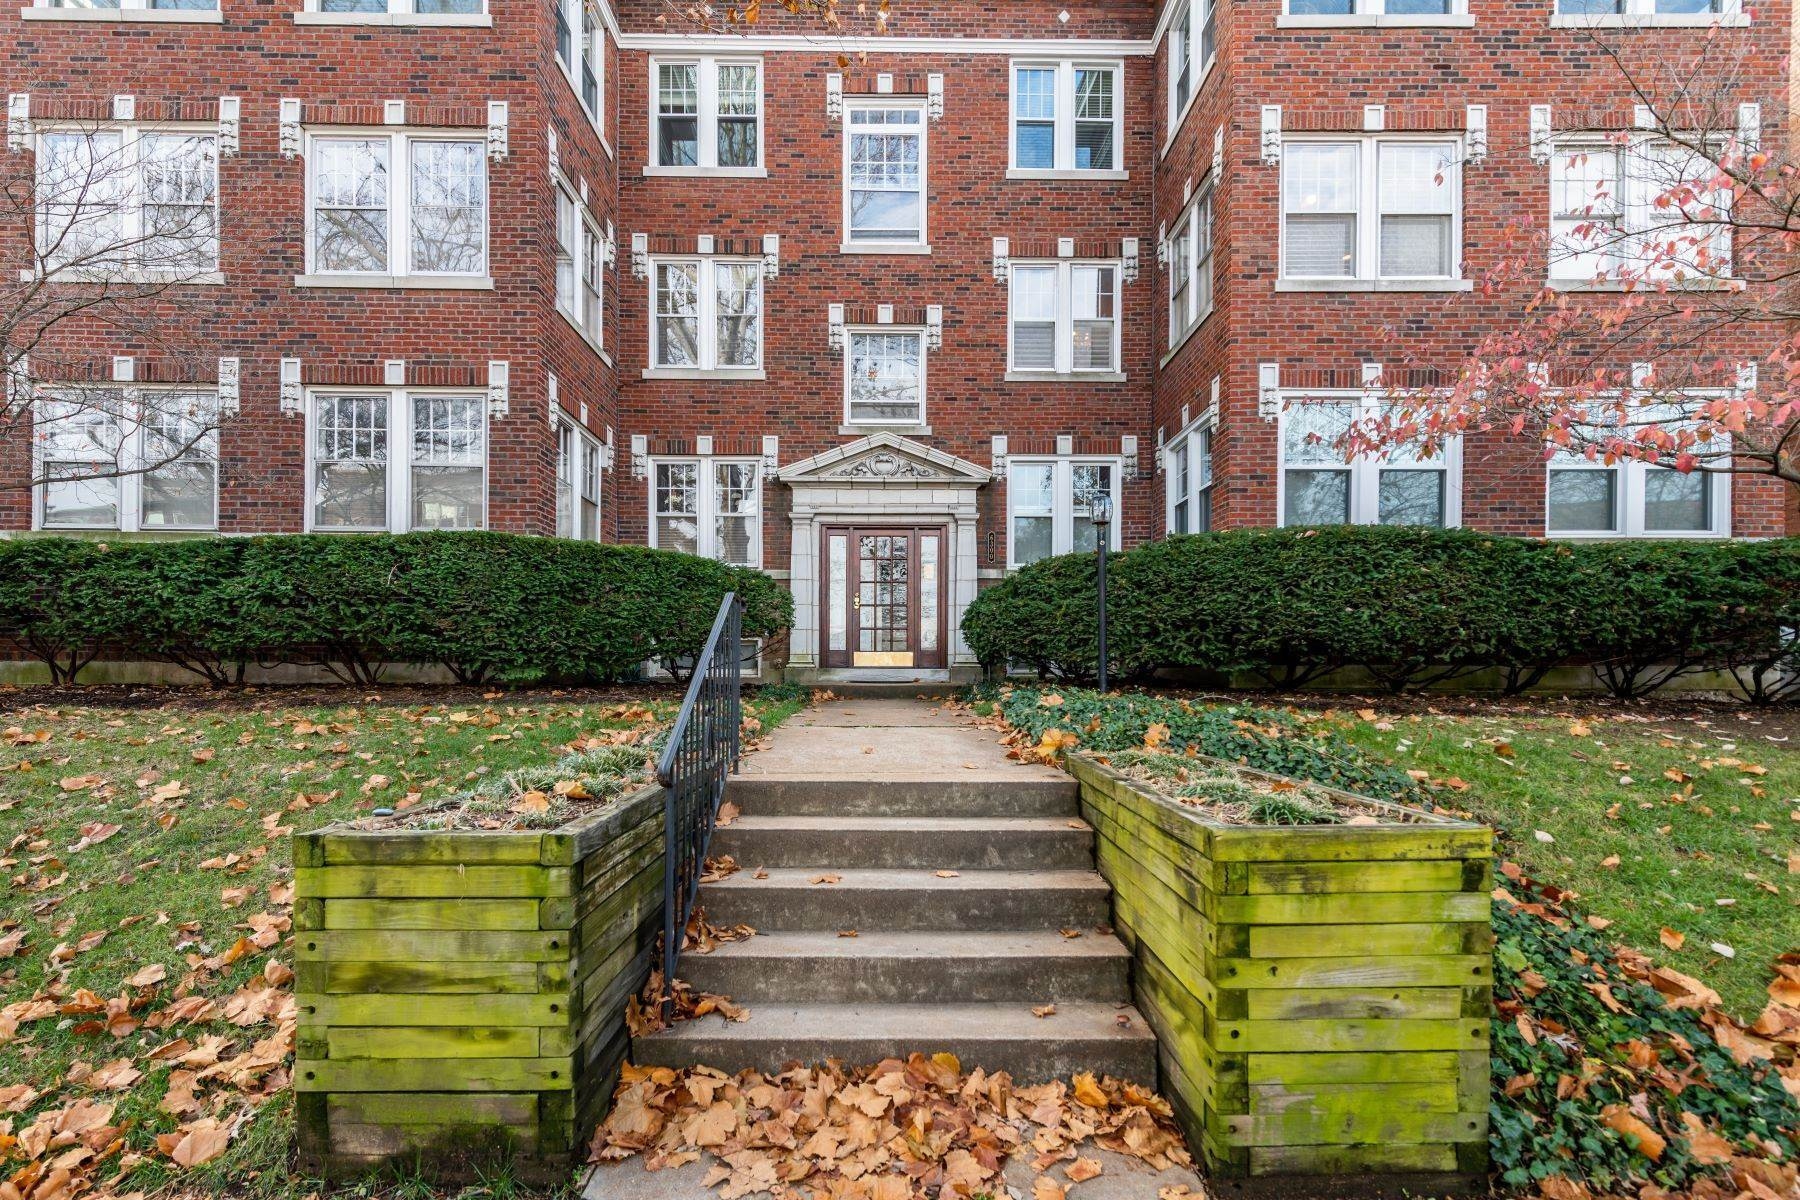 Property for Sale at Charming Condo in the Desirable Demun Neighborhood 6300 Northwood Avenue, #2E Clayton, Missouri 63105 United States